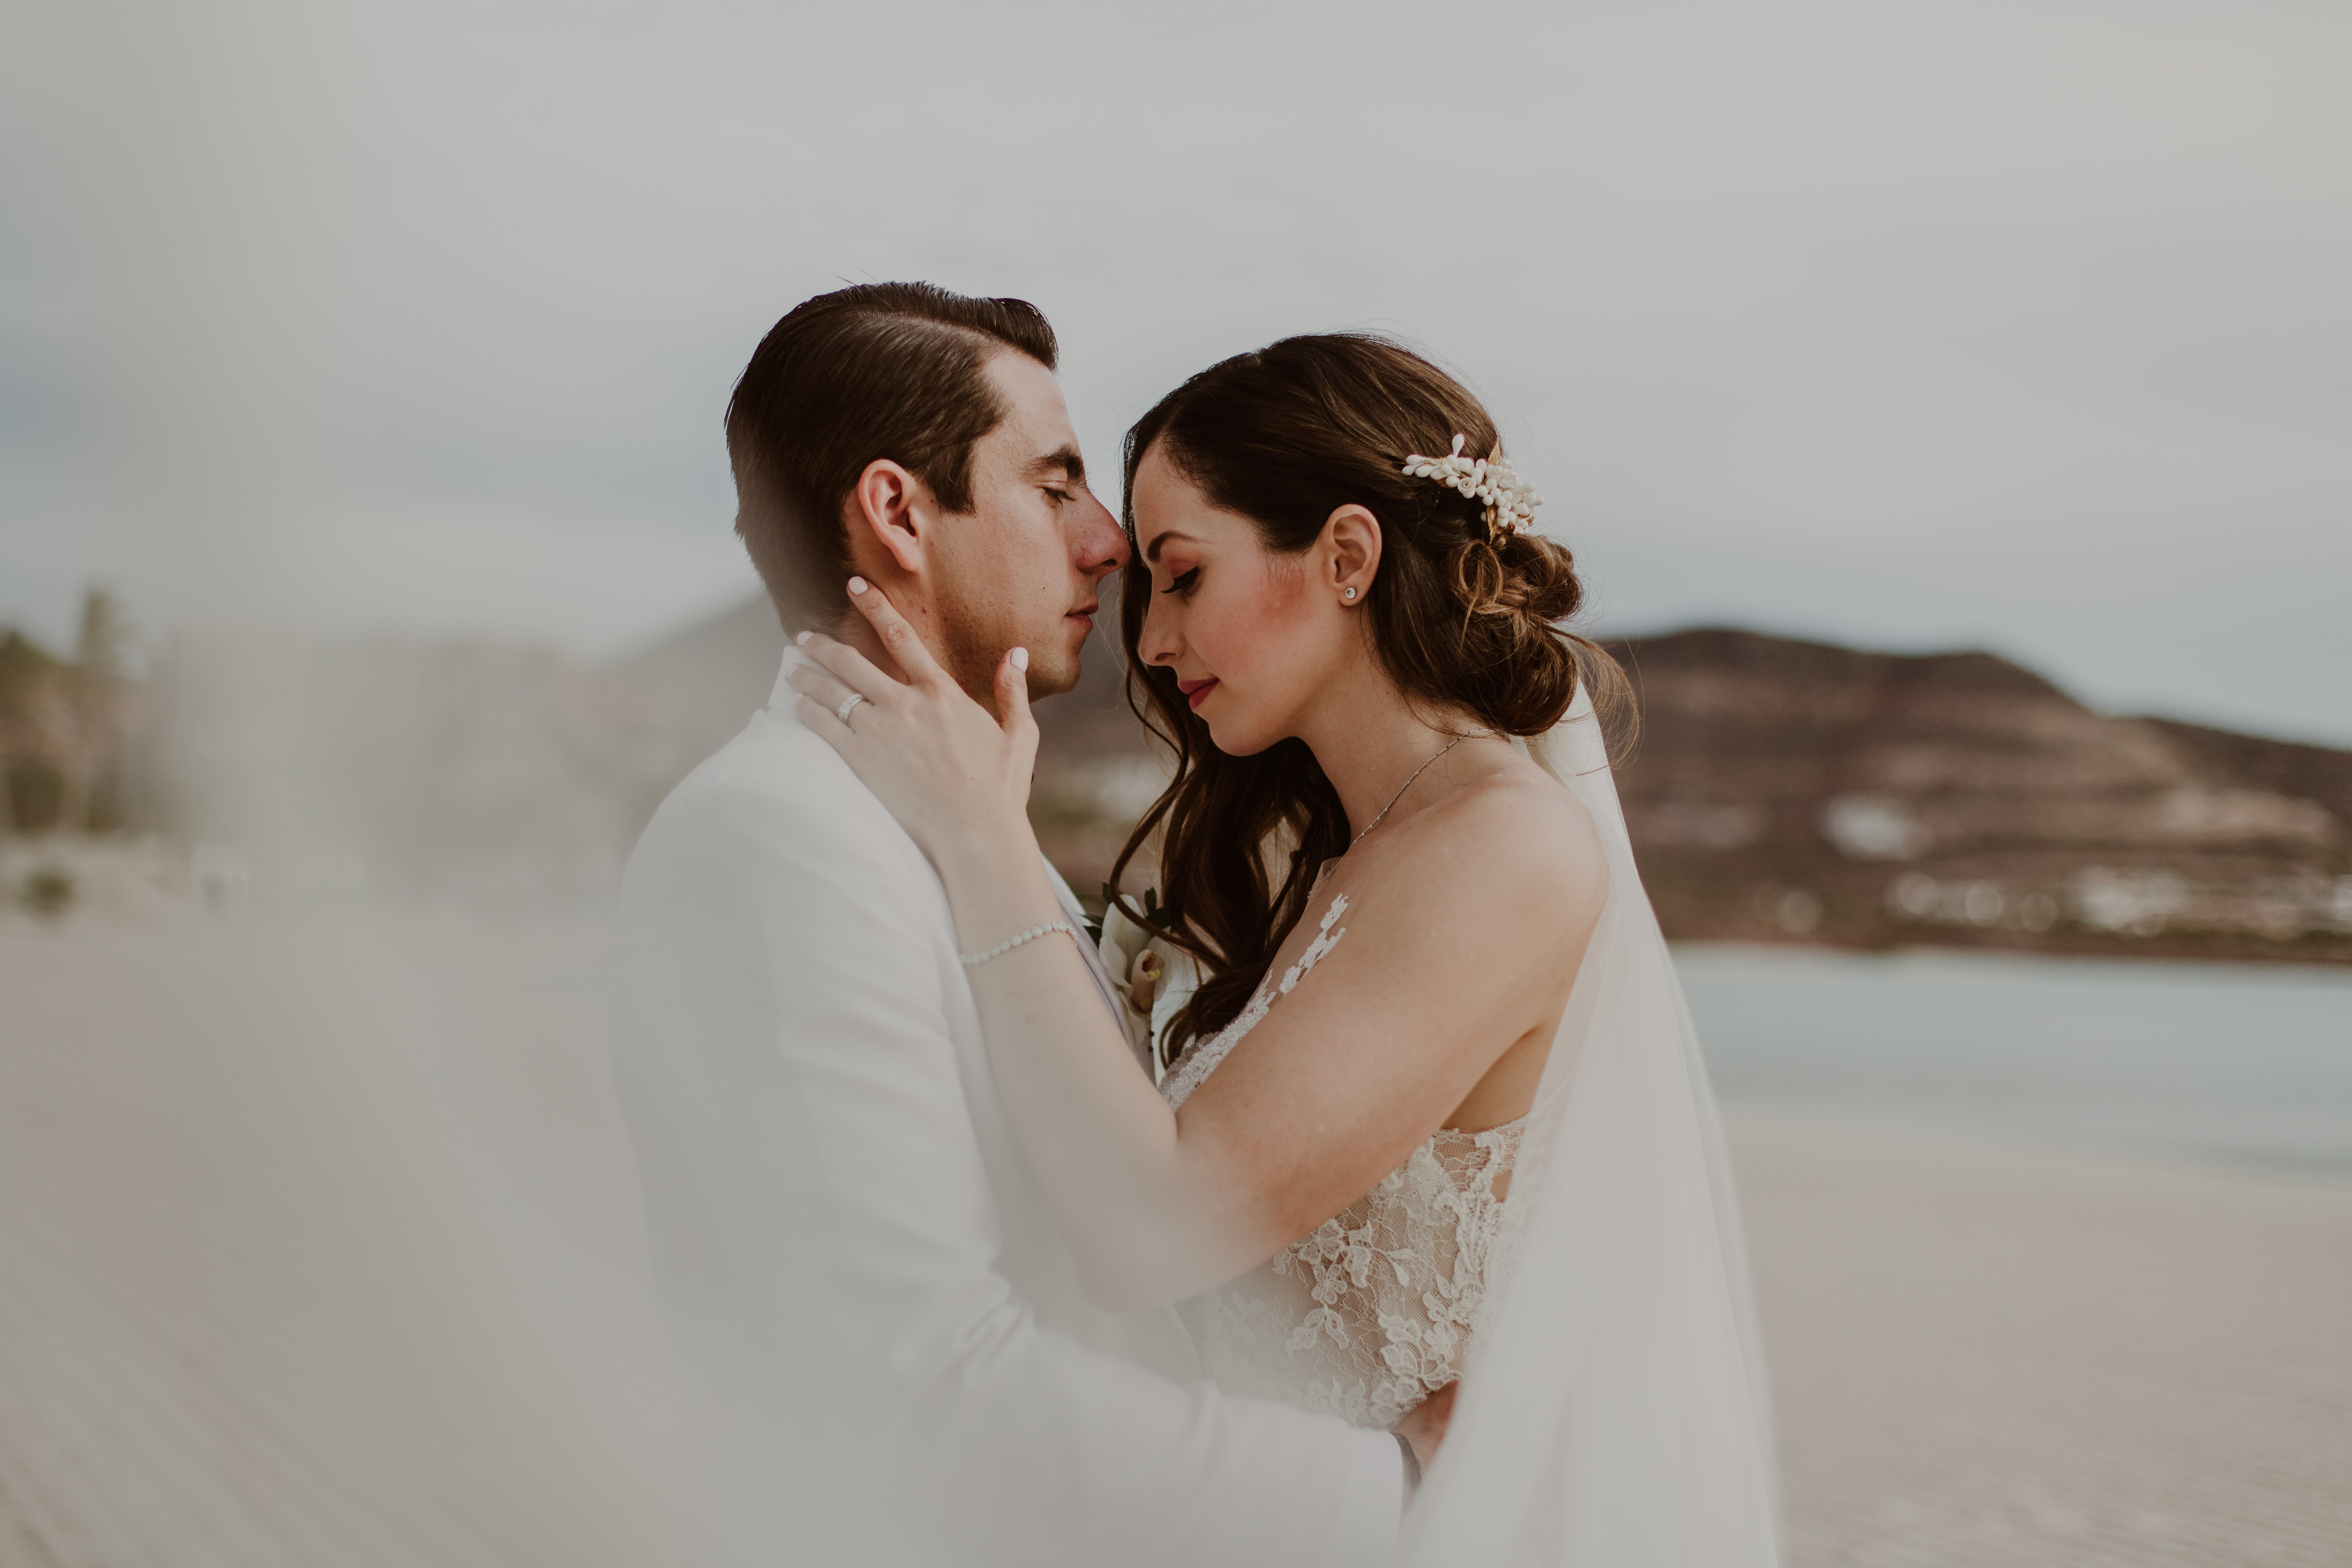 Meet Destination Wedding Photographer Daniela Villarreal, for Destination Wedding Blog Adriana Weddings